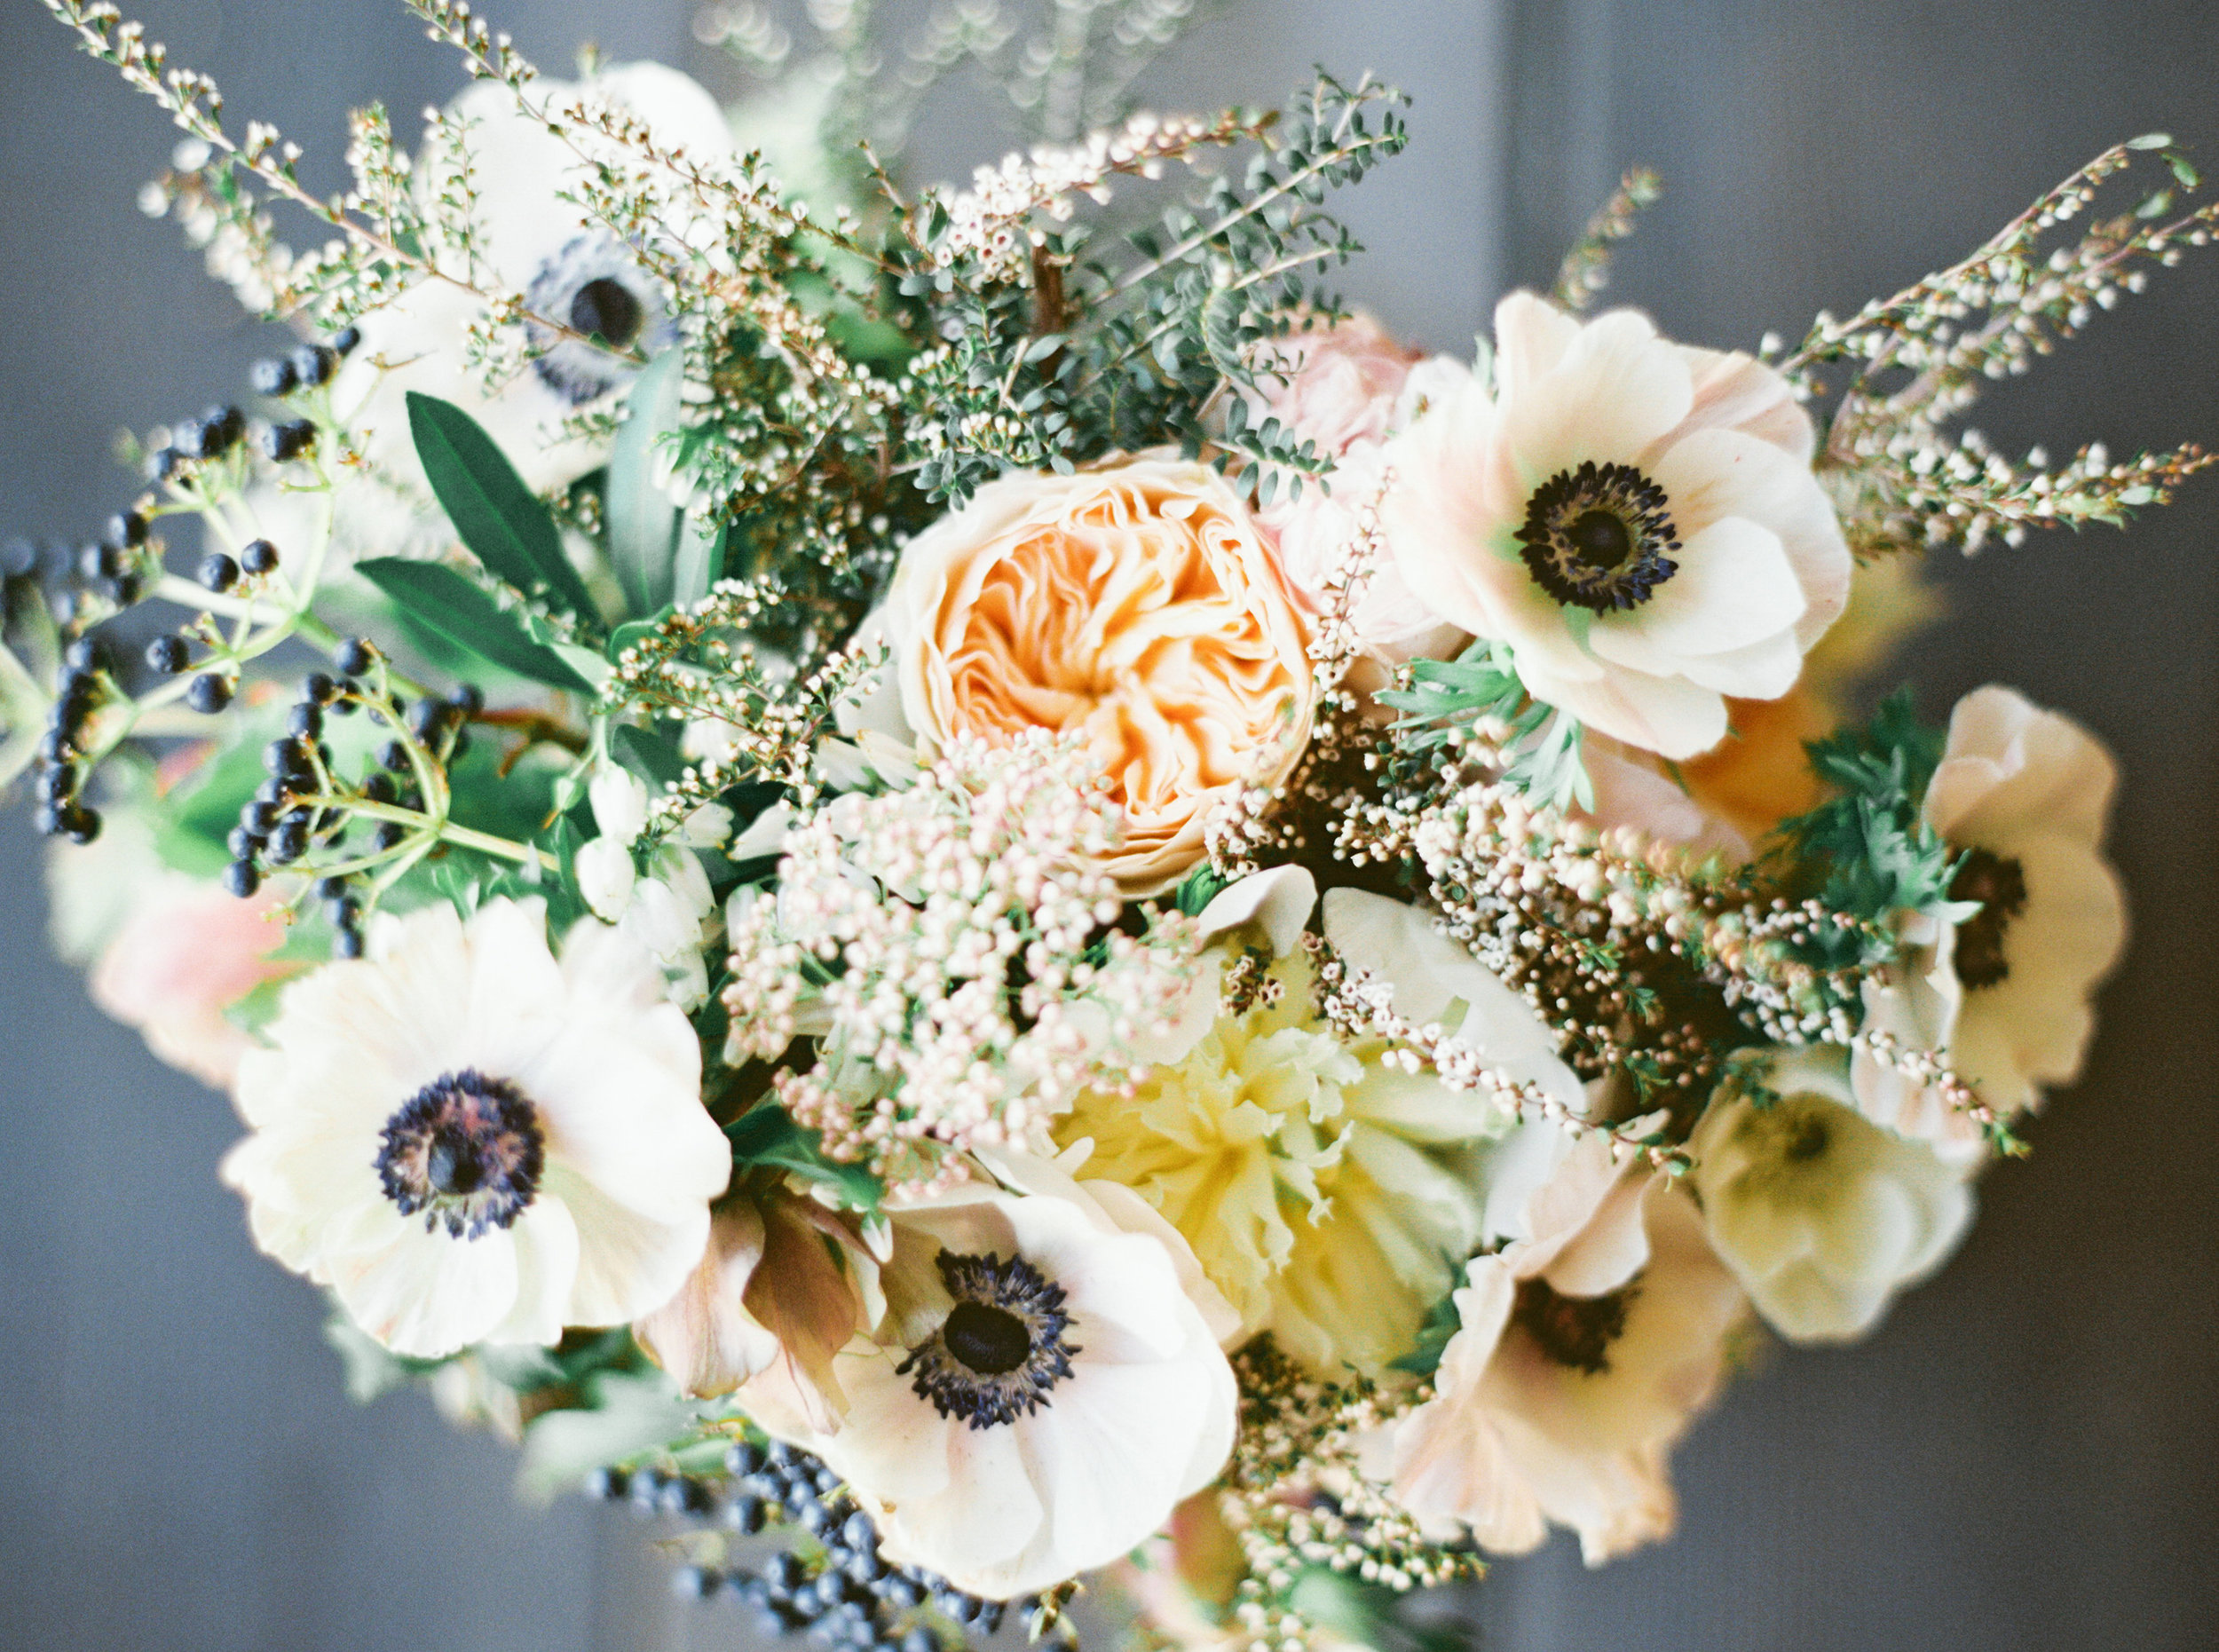 anemone bouquet by Passion Roots | Kylie Martin photography| Oahu, Hawaii